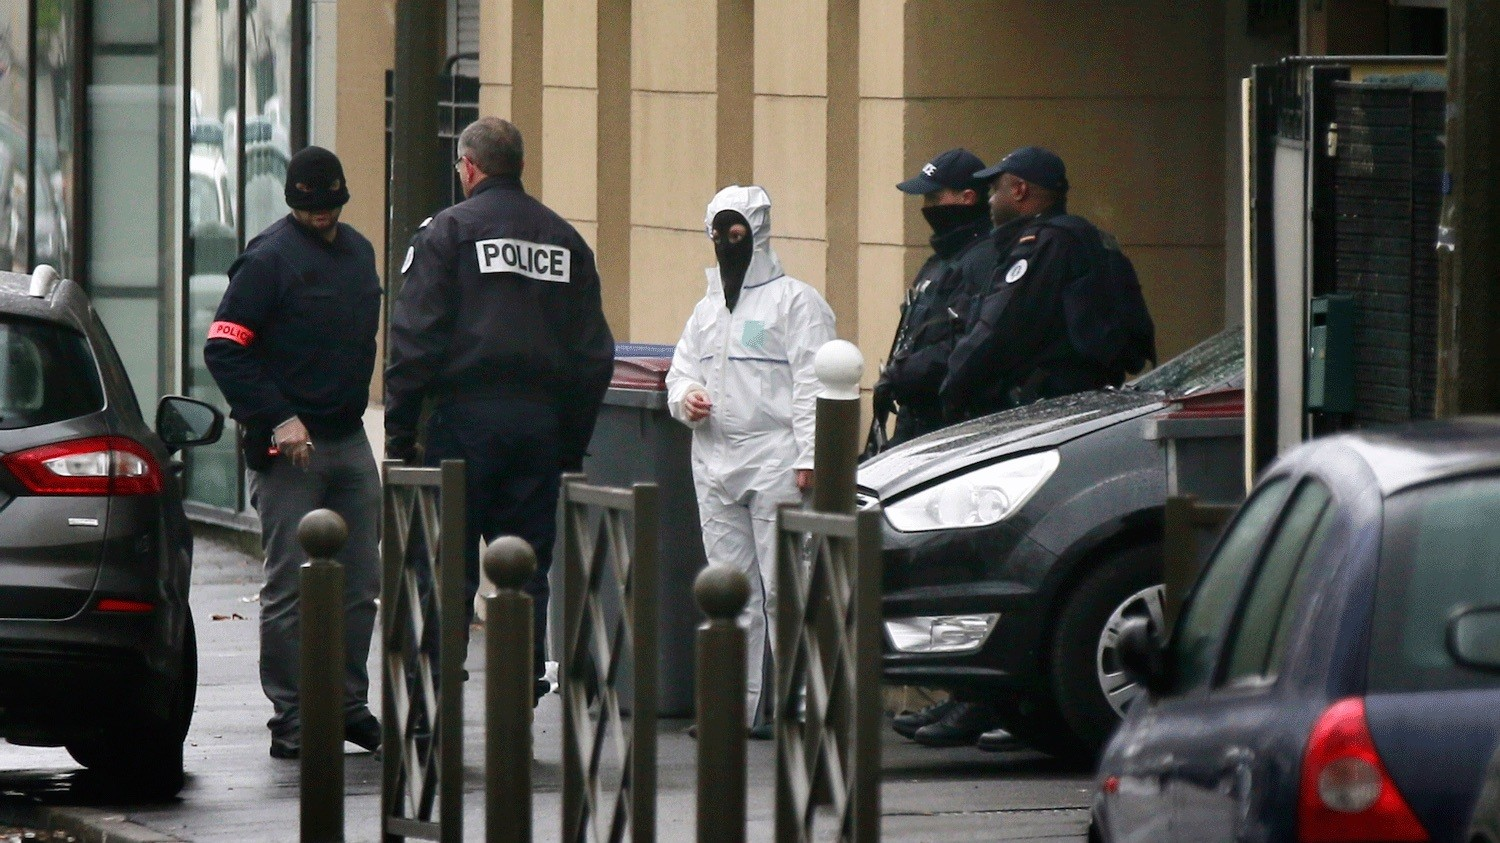 French Authorities Charge Terror Suspect Who Was Planning 'Imminent Attack'